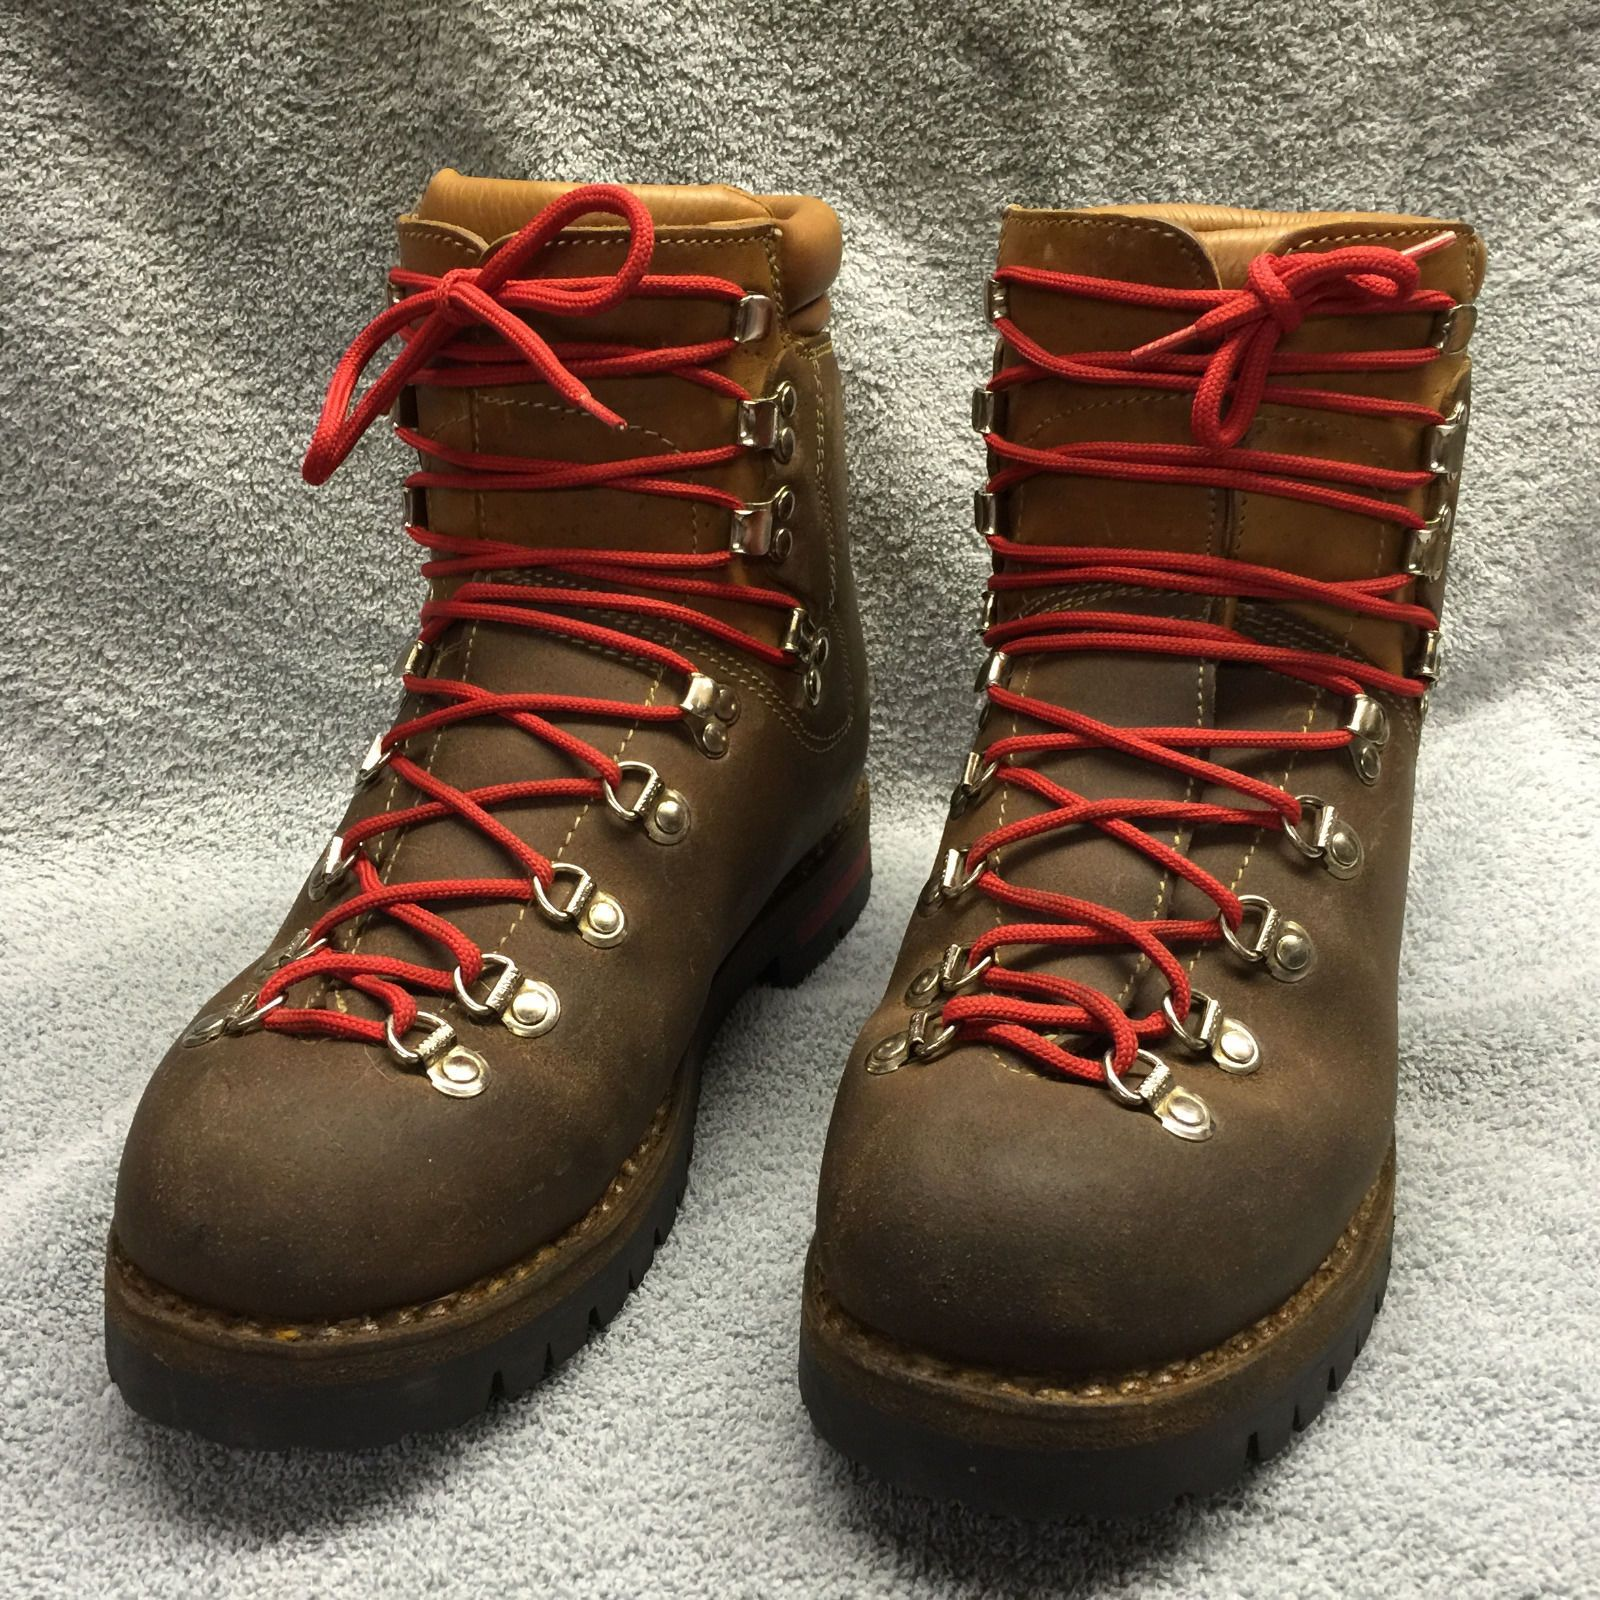 c810bf1e42a74 Details about ROCES vintage made in USA mountaineering hiking Tan ...